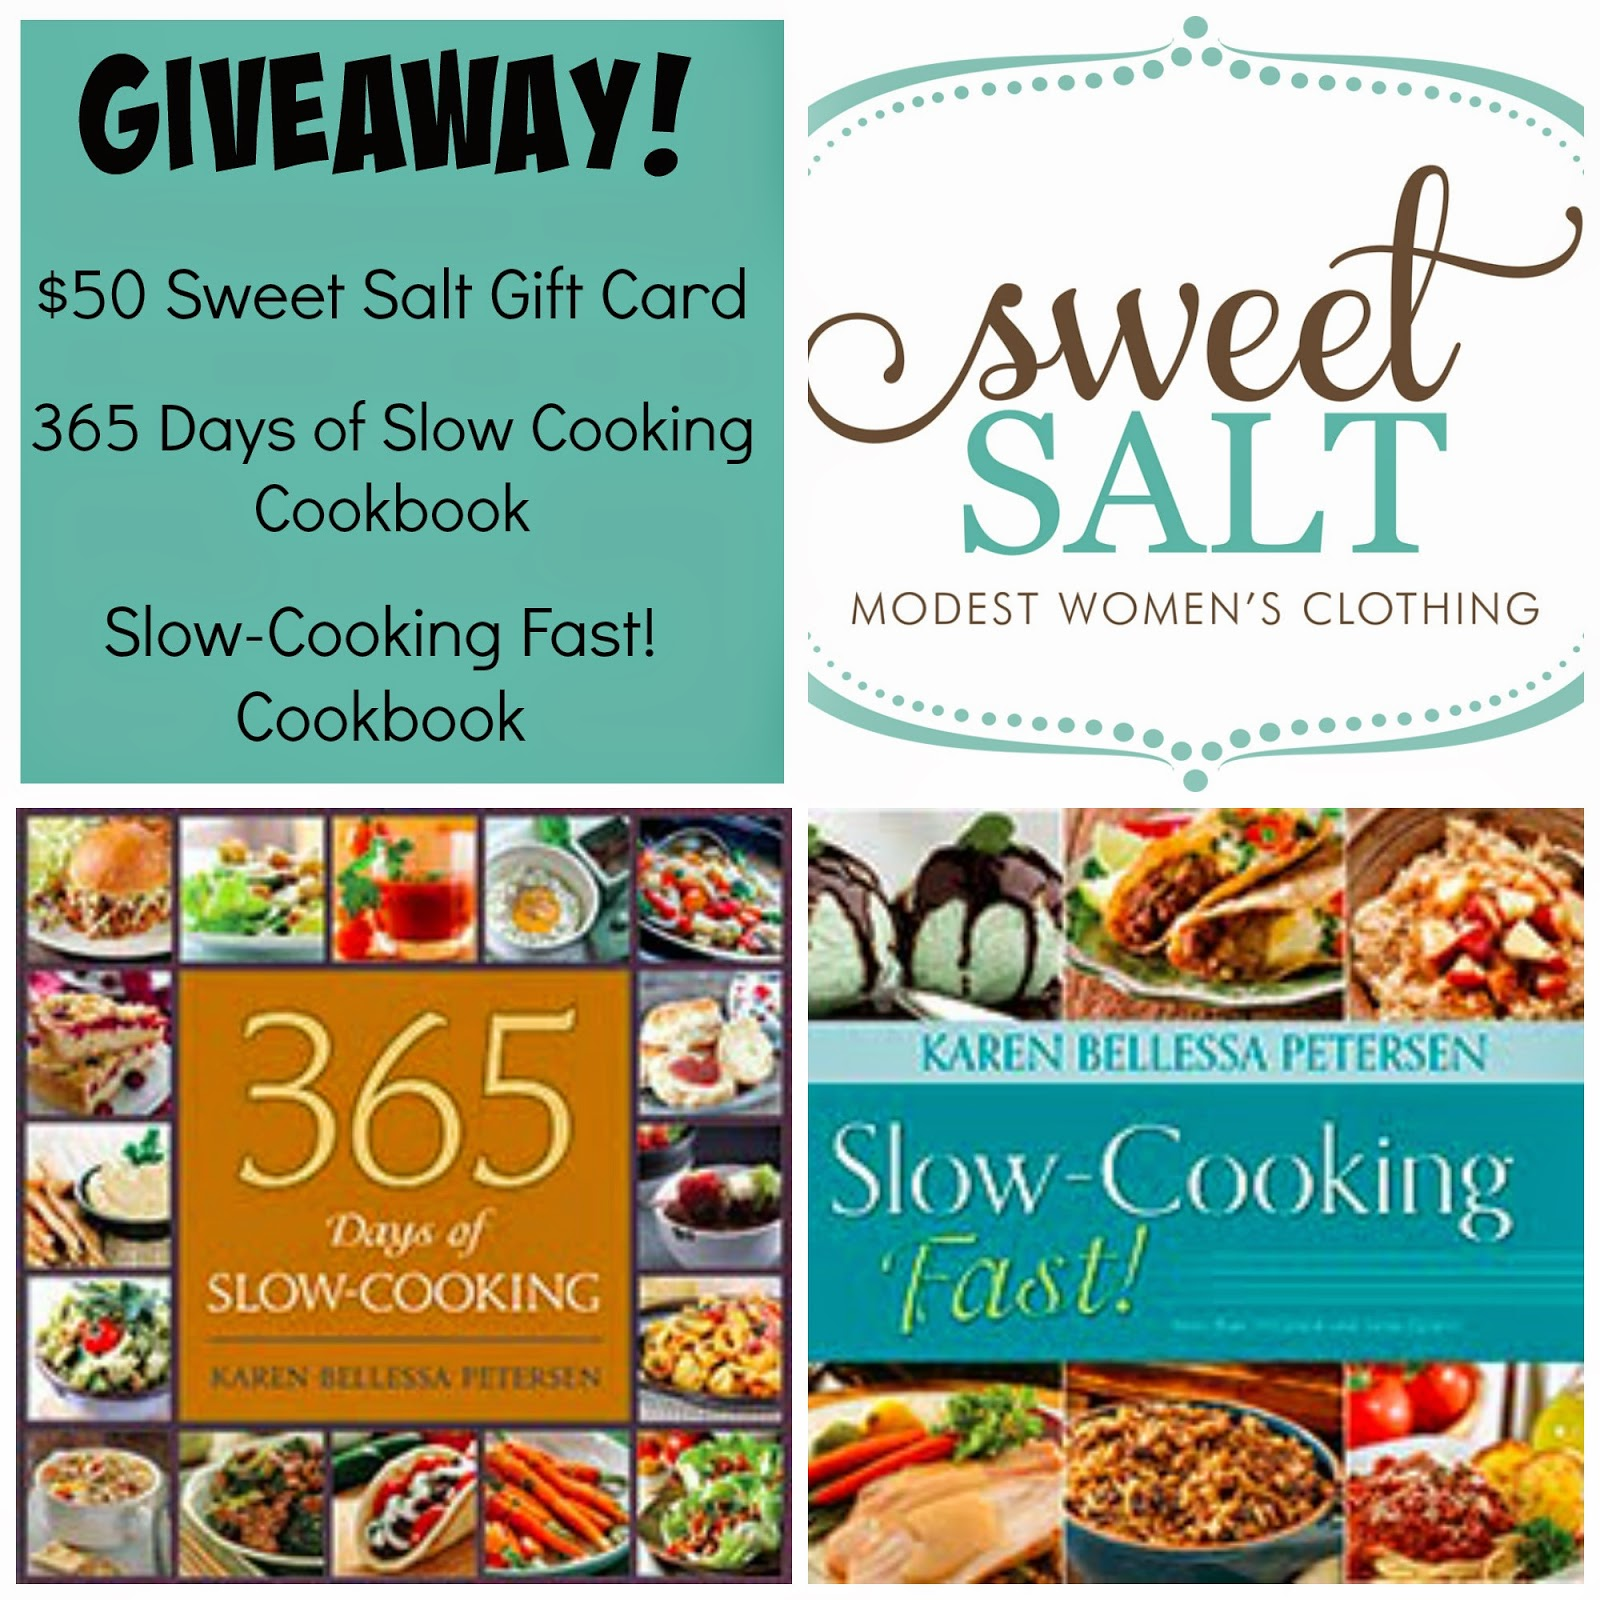 Sweet salt clothing giveaway plus 365 days of slow cooking and Slow Cooking Fast!